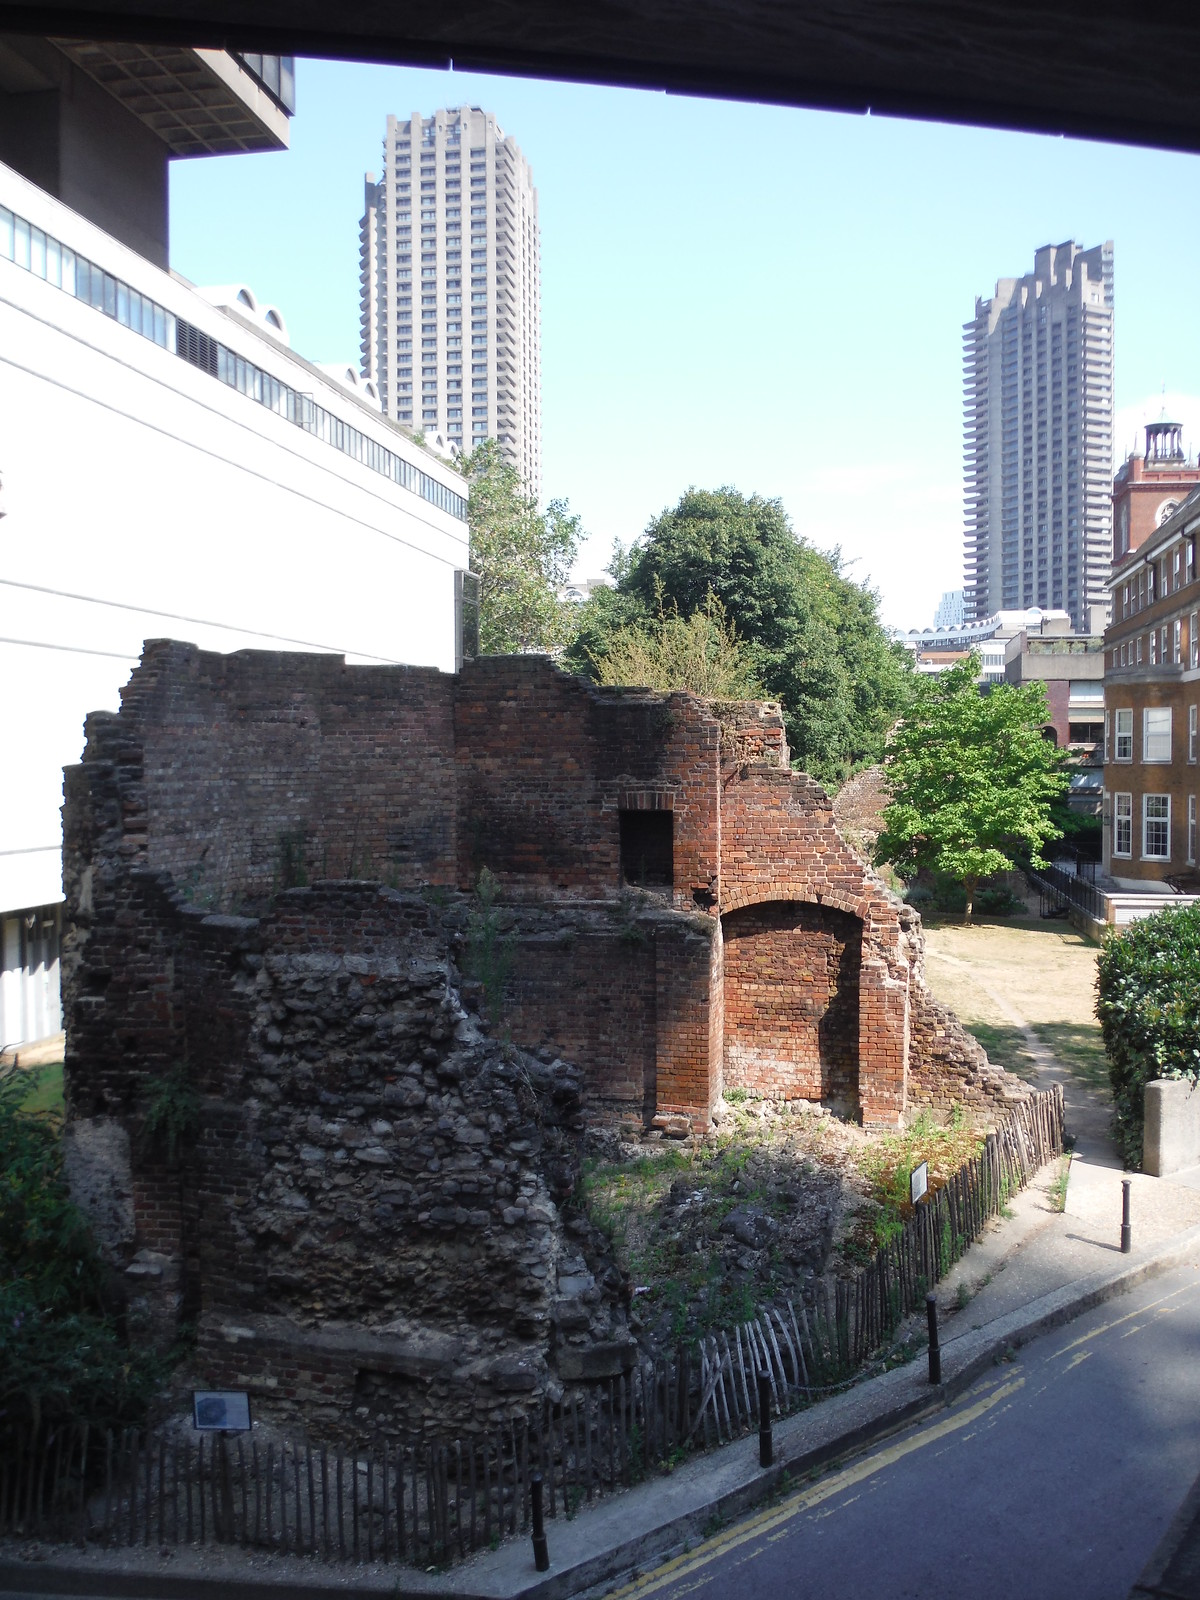 Bastion 14 of the London Wall with the Museum of London and parts of the Barbican Estate SWC Short Walk 47 - The London Wall